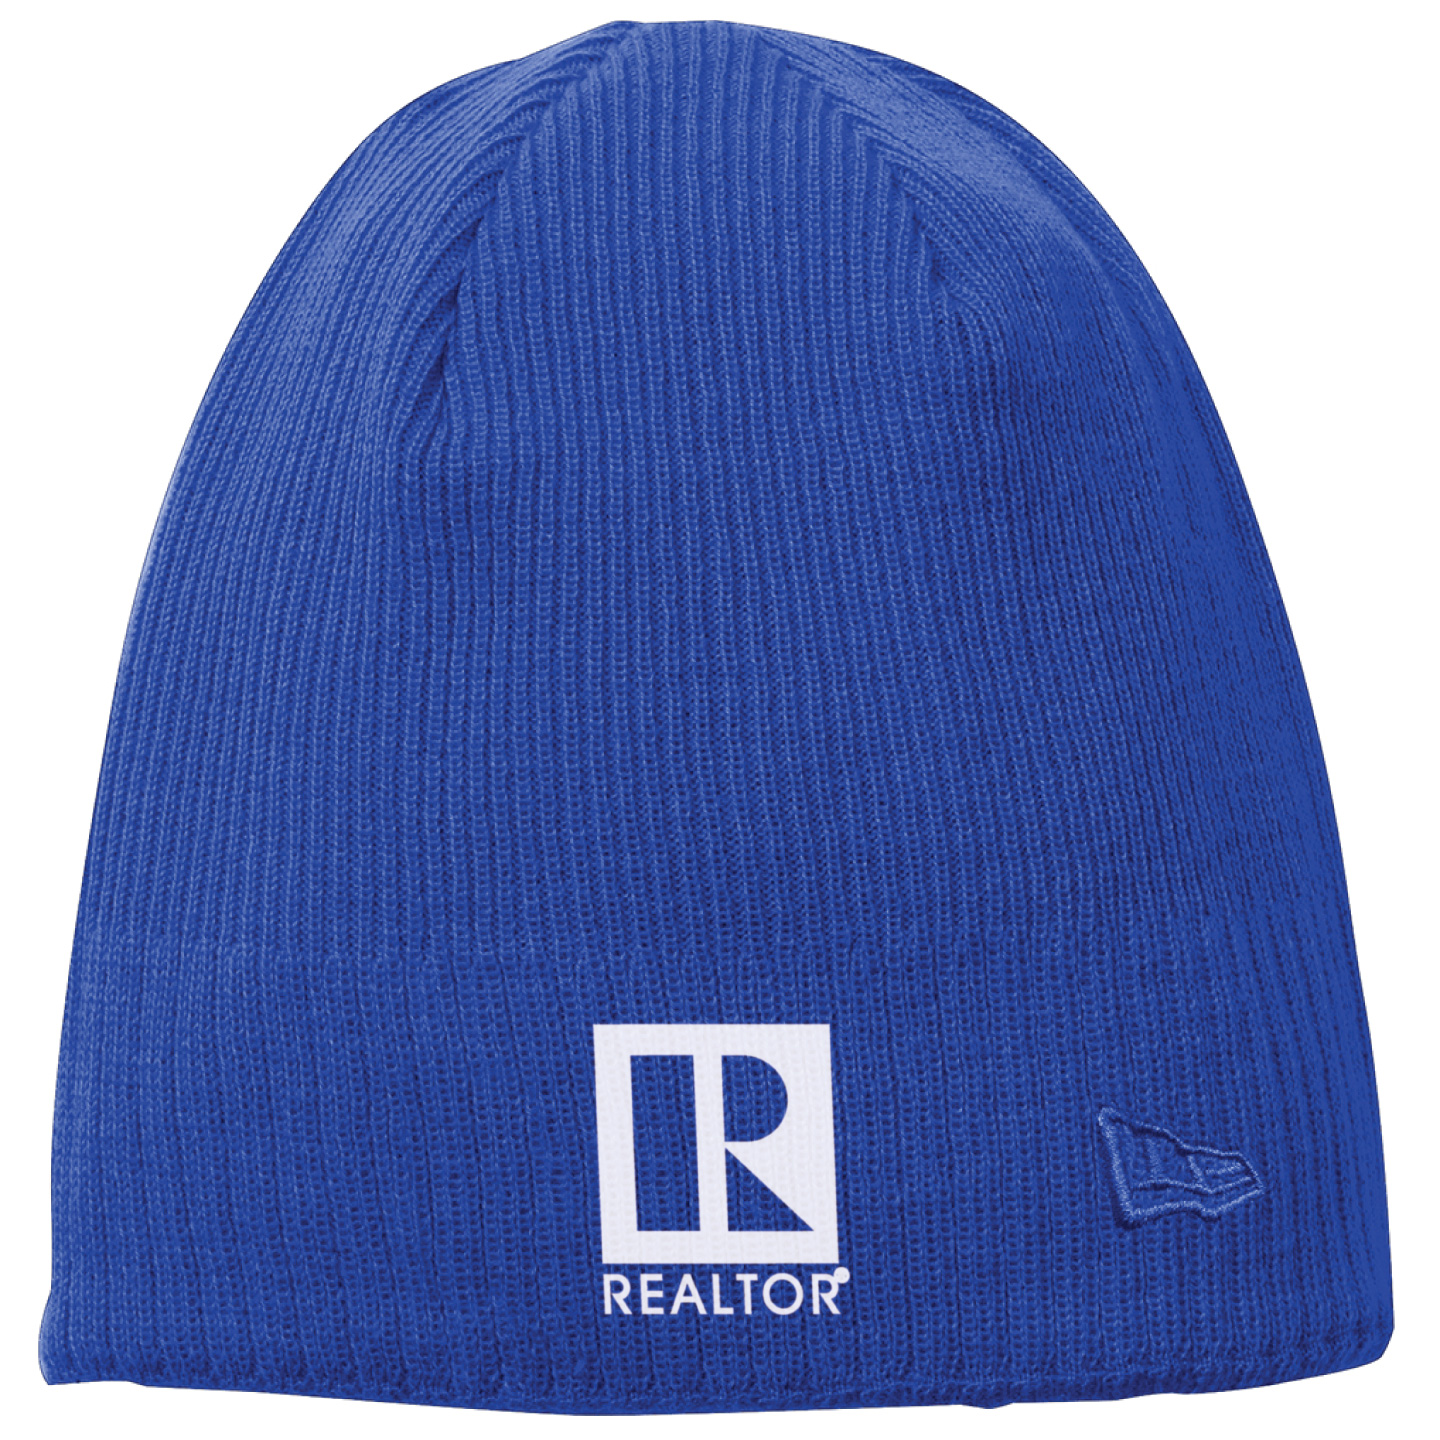 New Era Knit Beanie - RCG4658